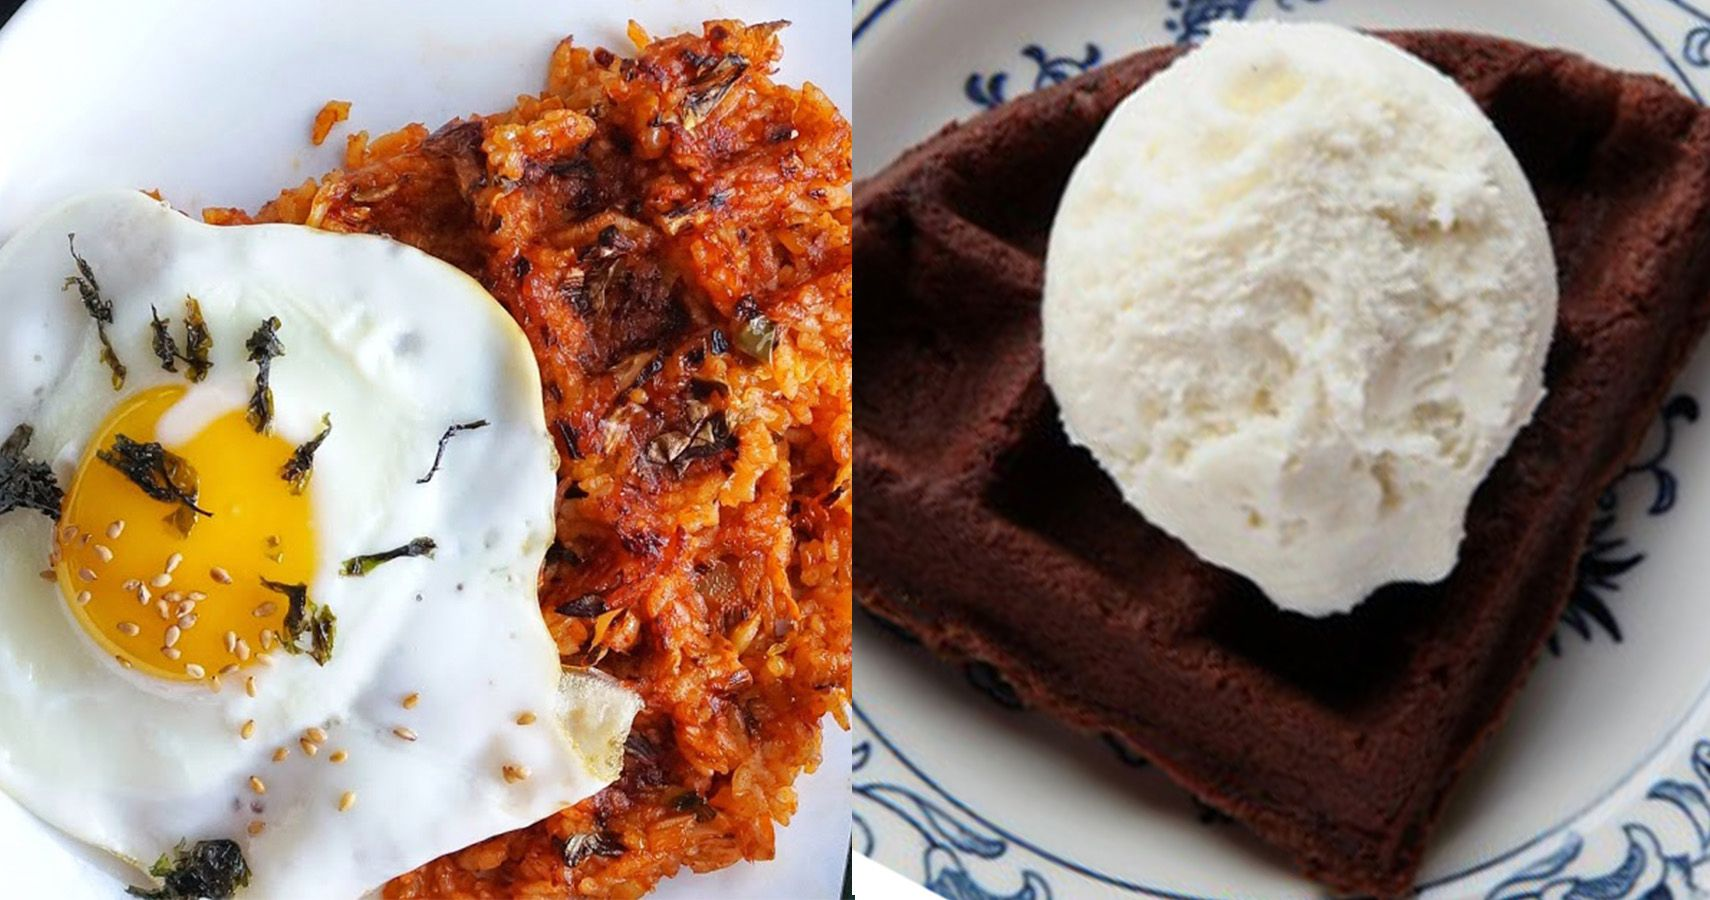 15 Yummy Foods You Didn't Know You Could Make In A Waffle Iron